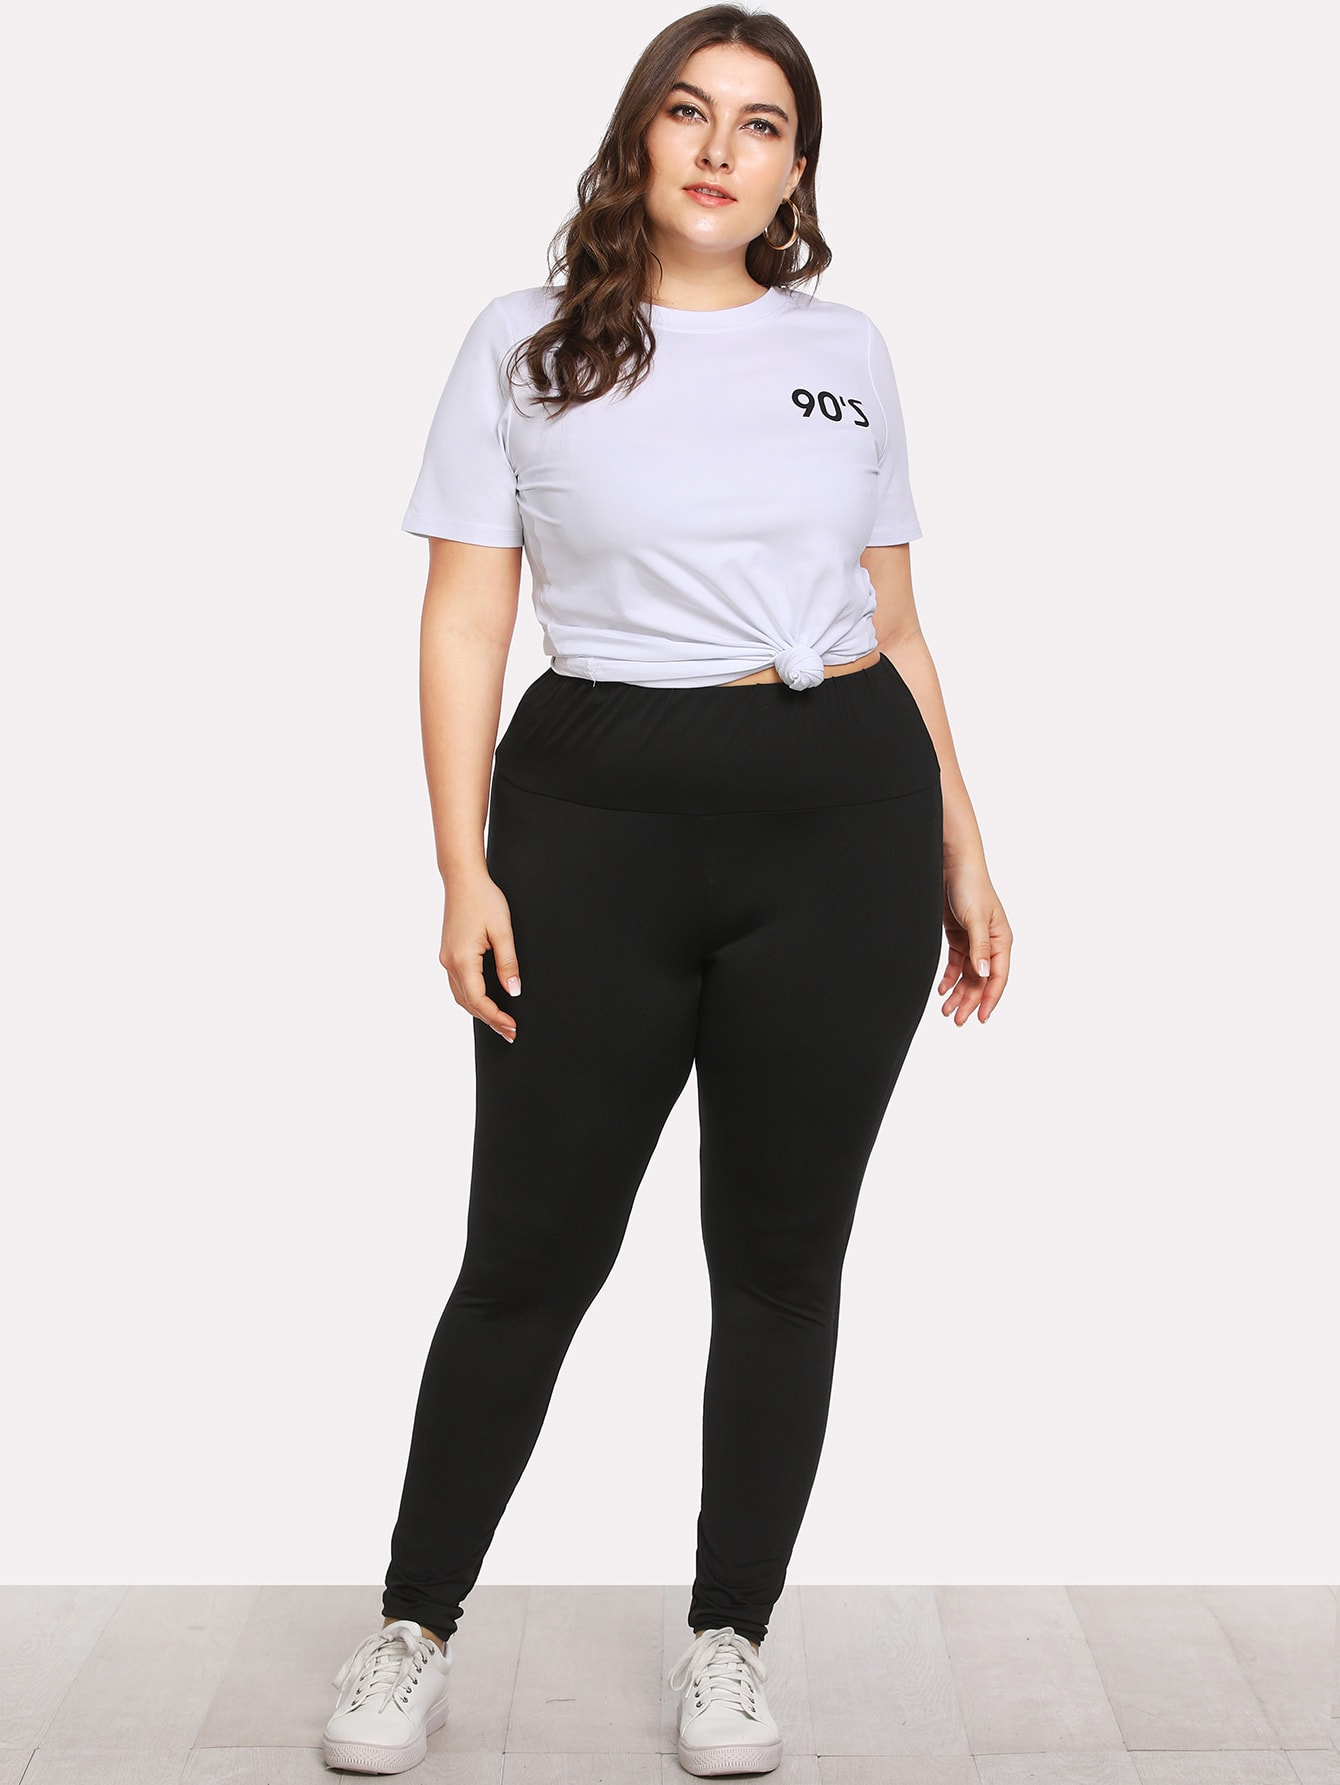 Plus Elastic Waist Skinny Leggings зарядное устройство prorab striker 8